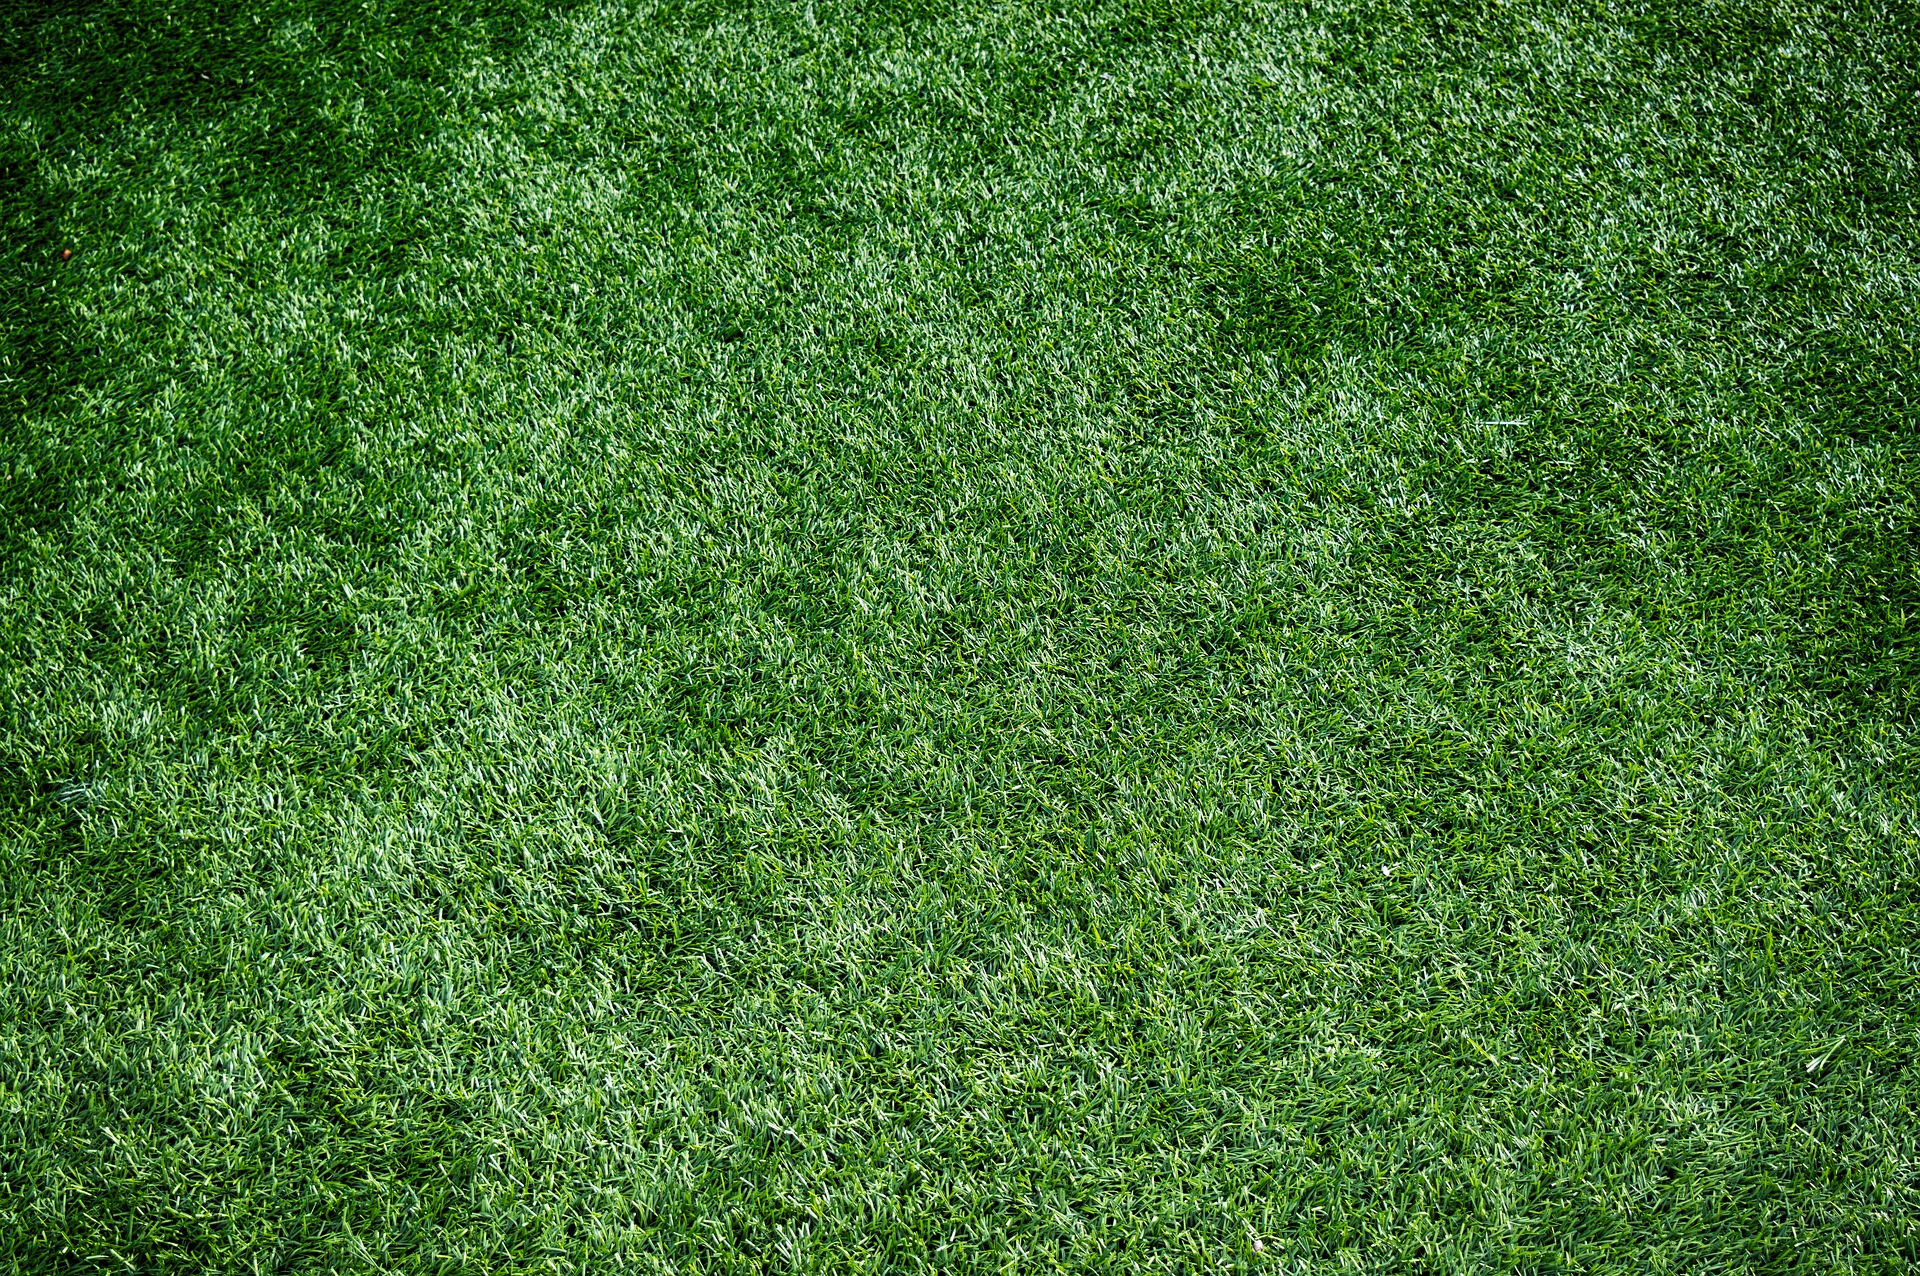 Synthetic grass lawn